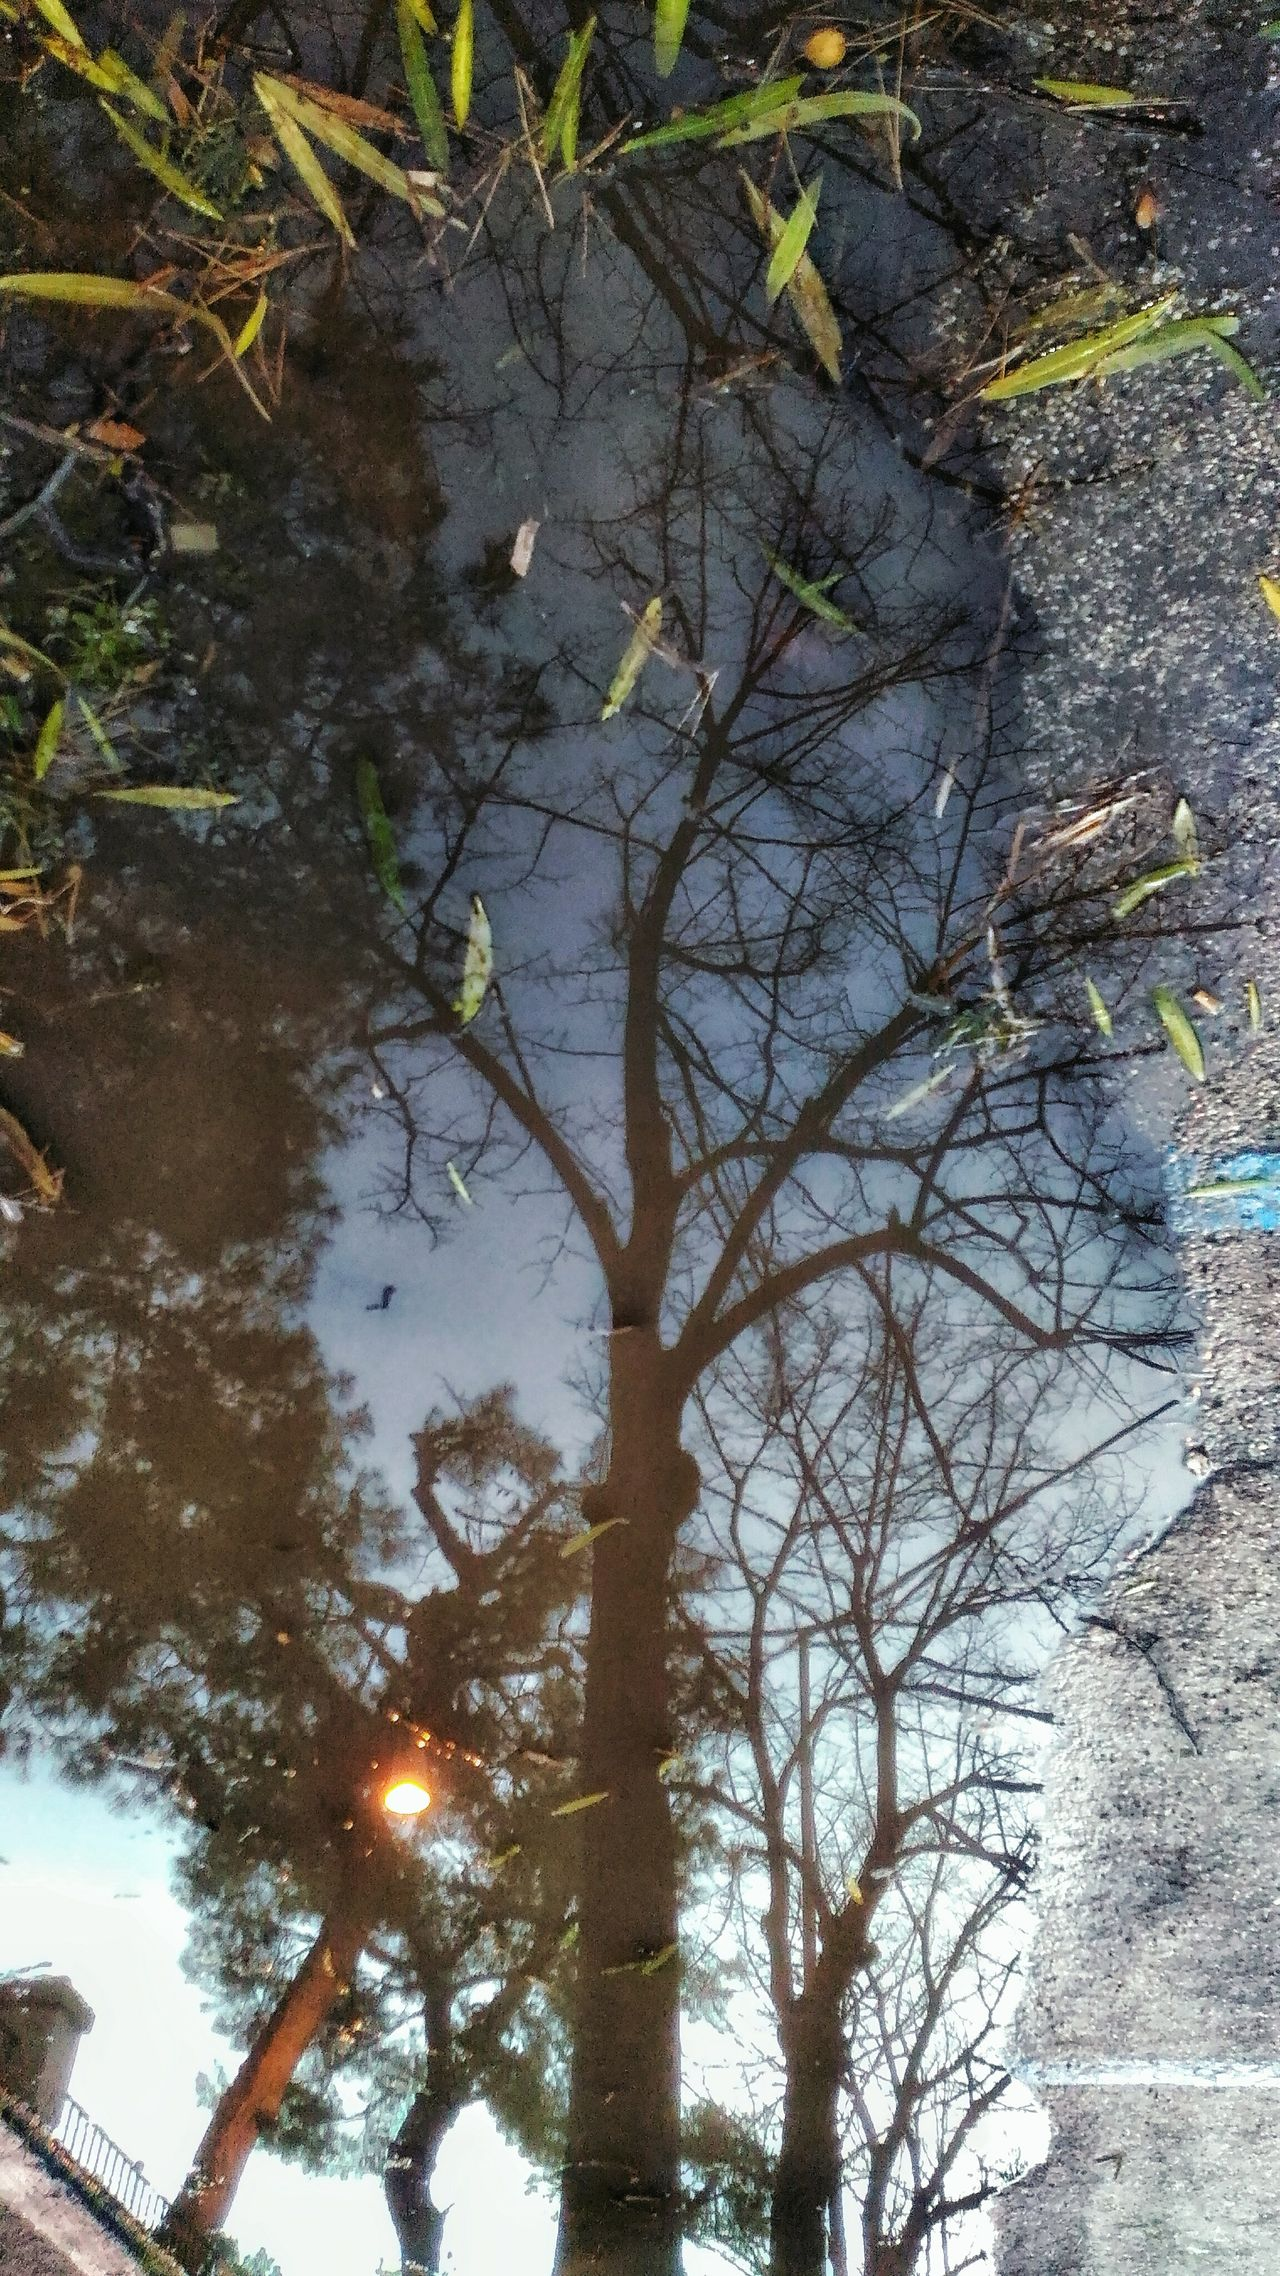 Water Reflections Tree Nature No People Outdoors Beauty In Nature Tranquility Van Gango Tree Reflection In A Puddle Leaves In Puddle Sky Italy🇮🇹 After Rain